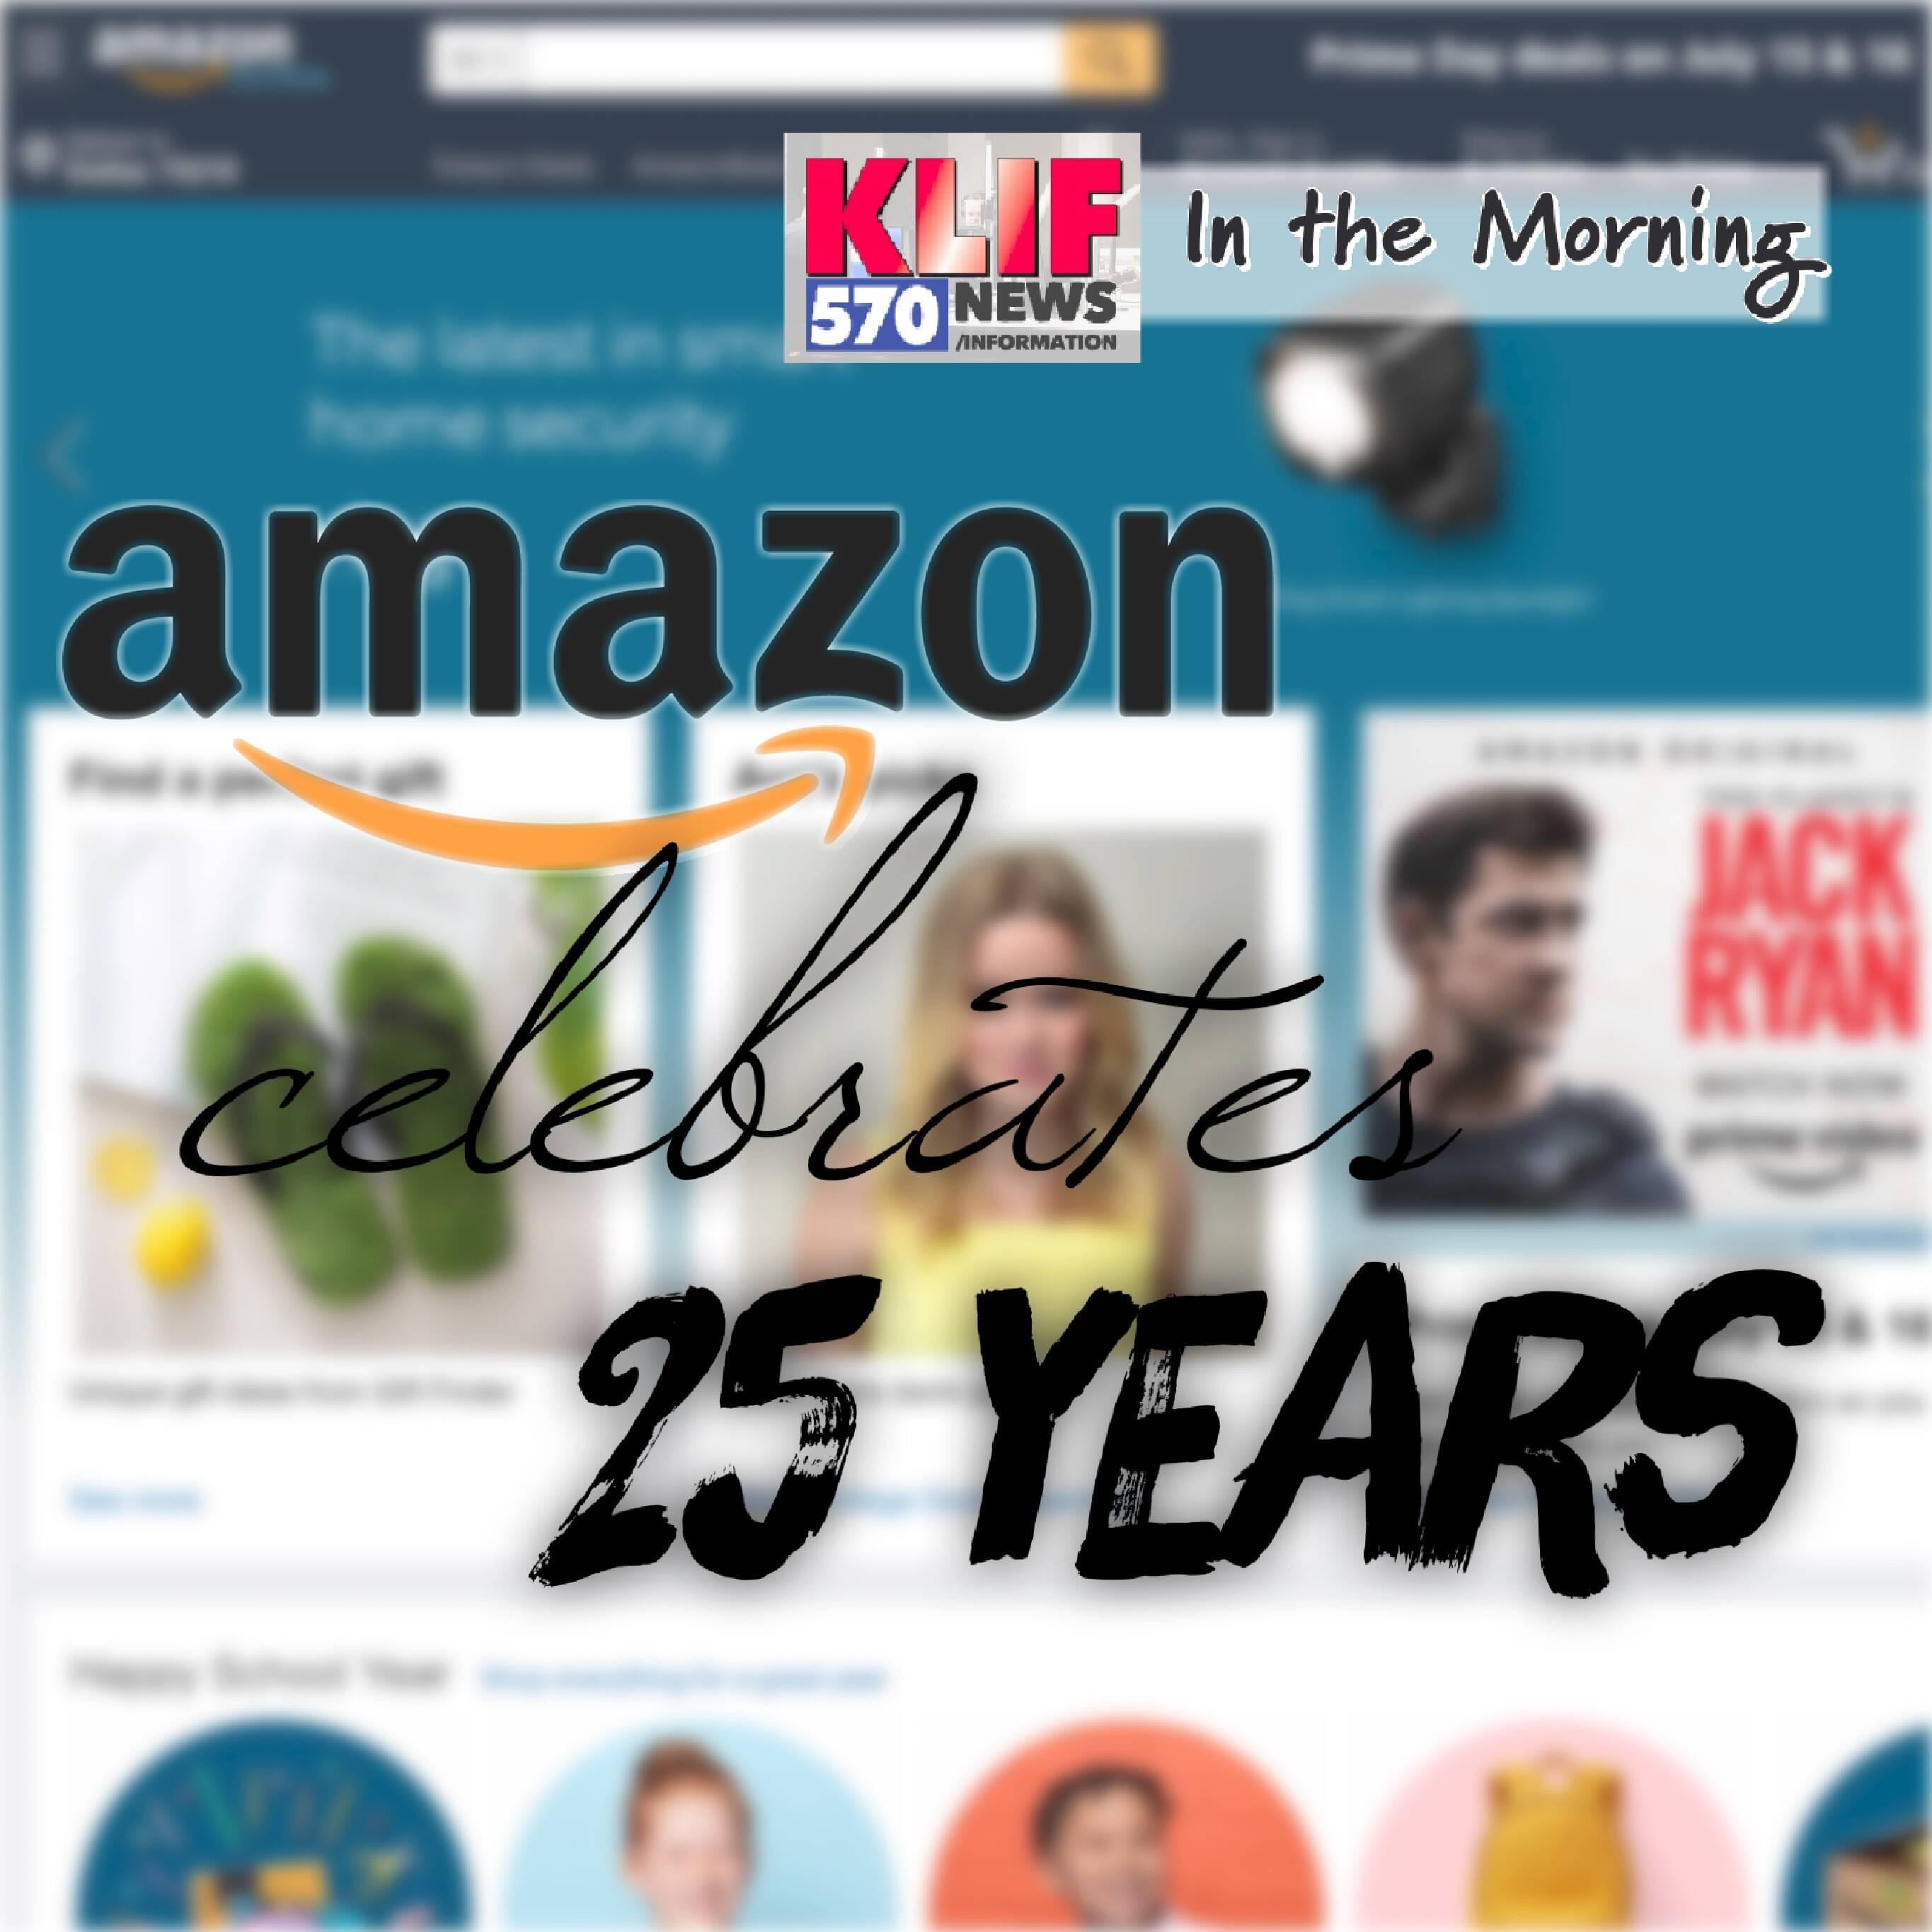 Amazon Turns 25!